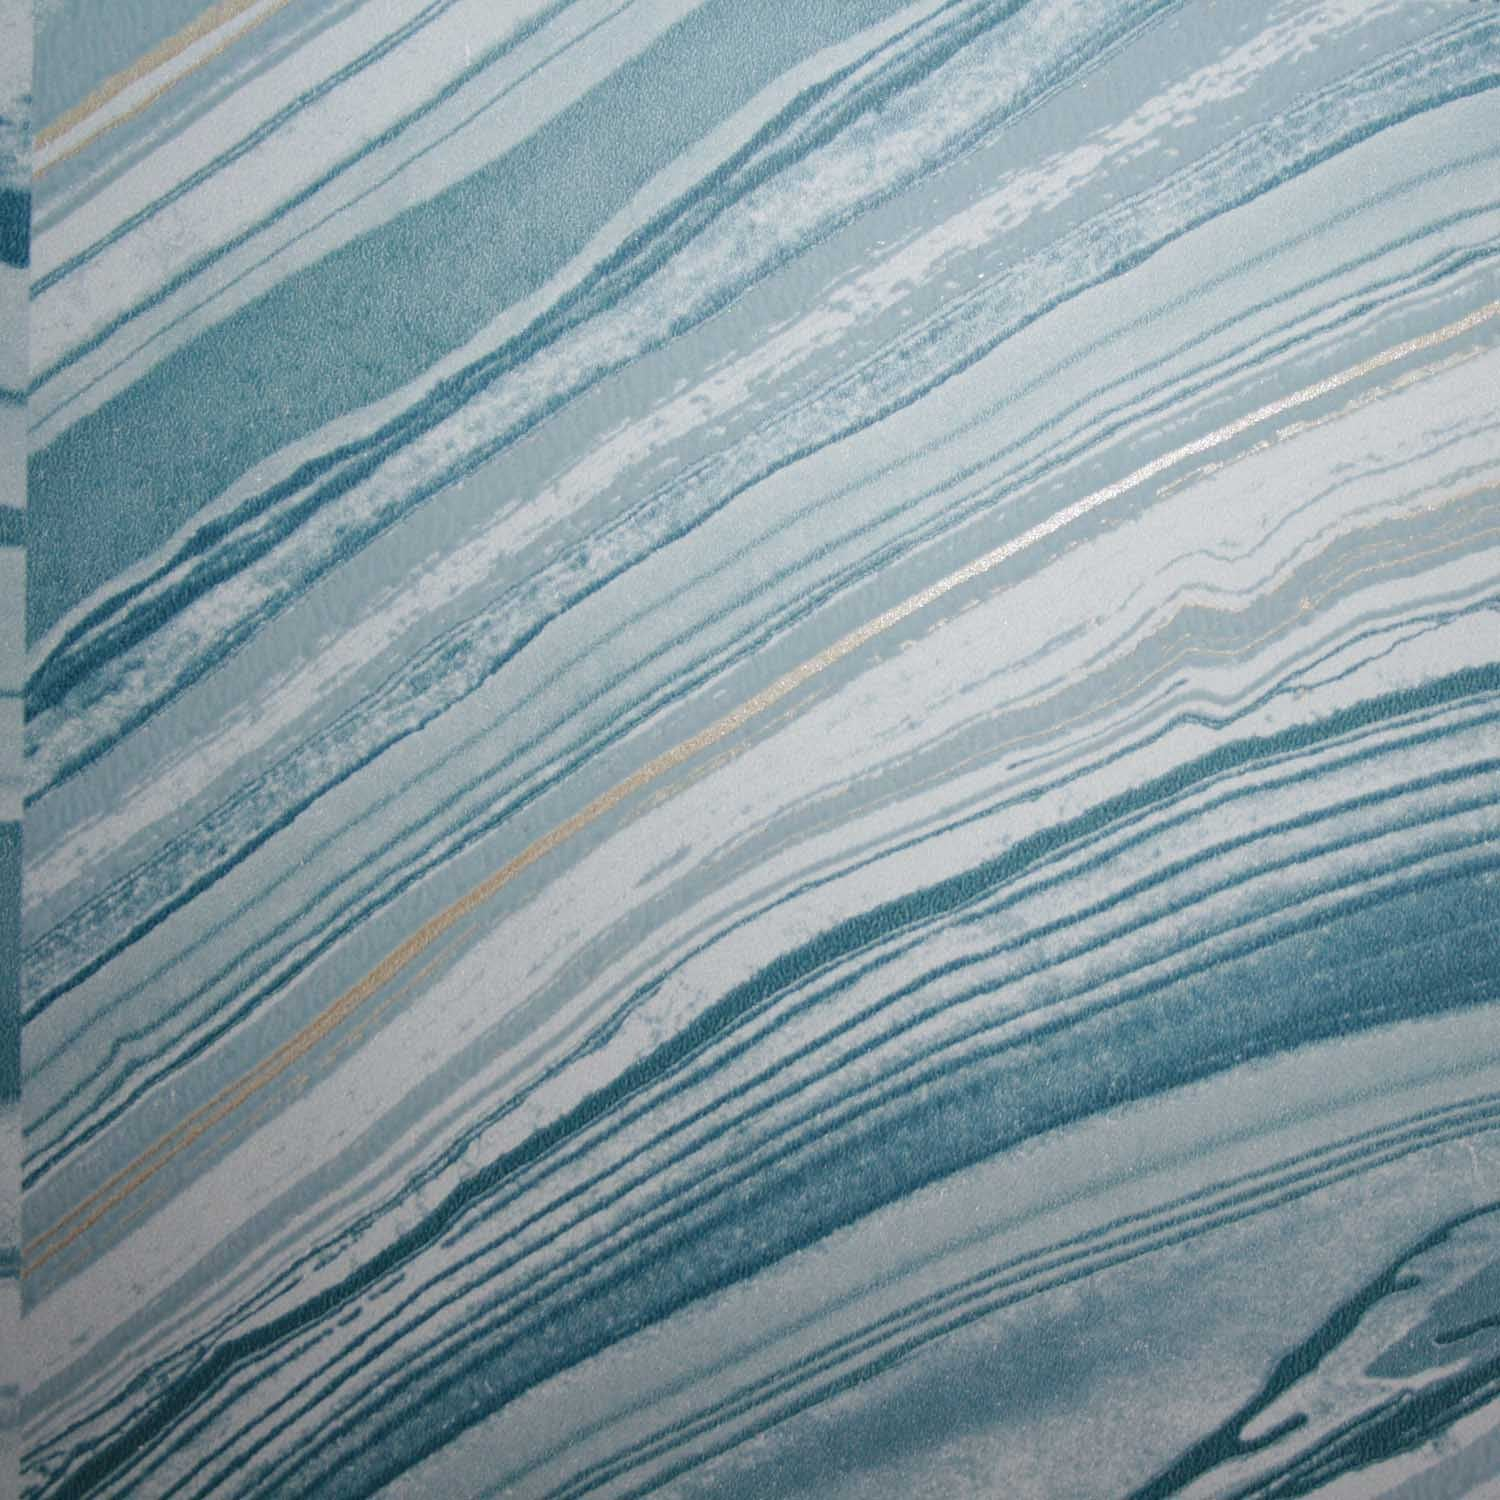 Beautiful Wallpaper Marble Turquoise - Agate_Blue_beige_dark_grey_white_and_irridescent_pearl_2  Snapshot_715830.jpg?v\u003d1517005919